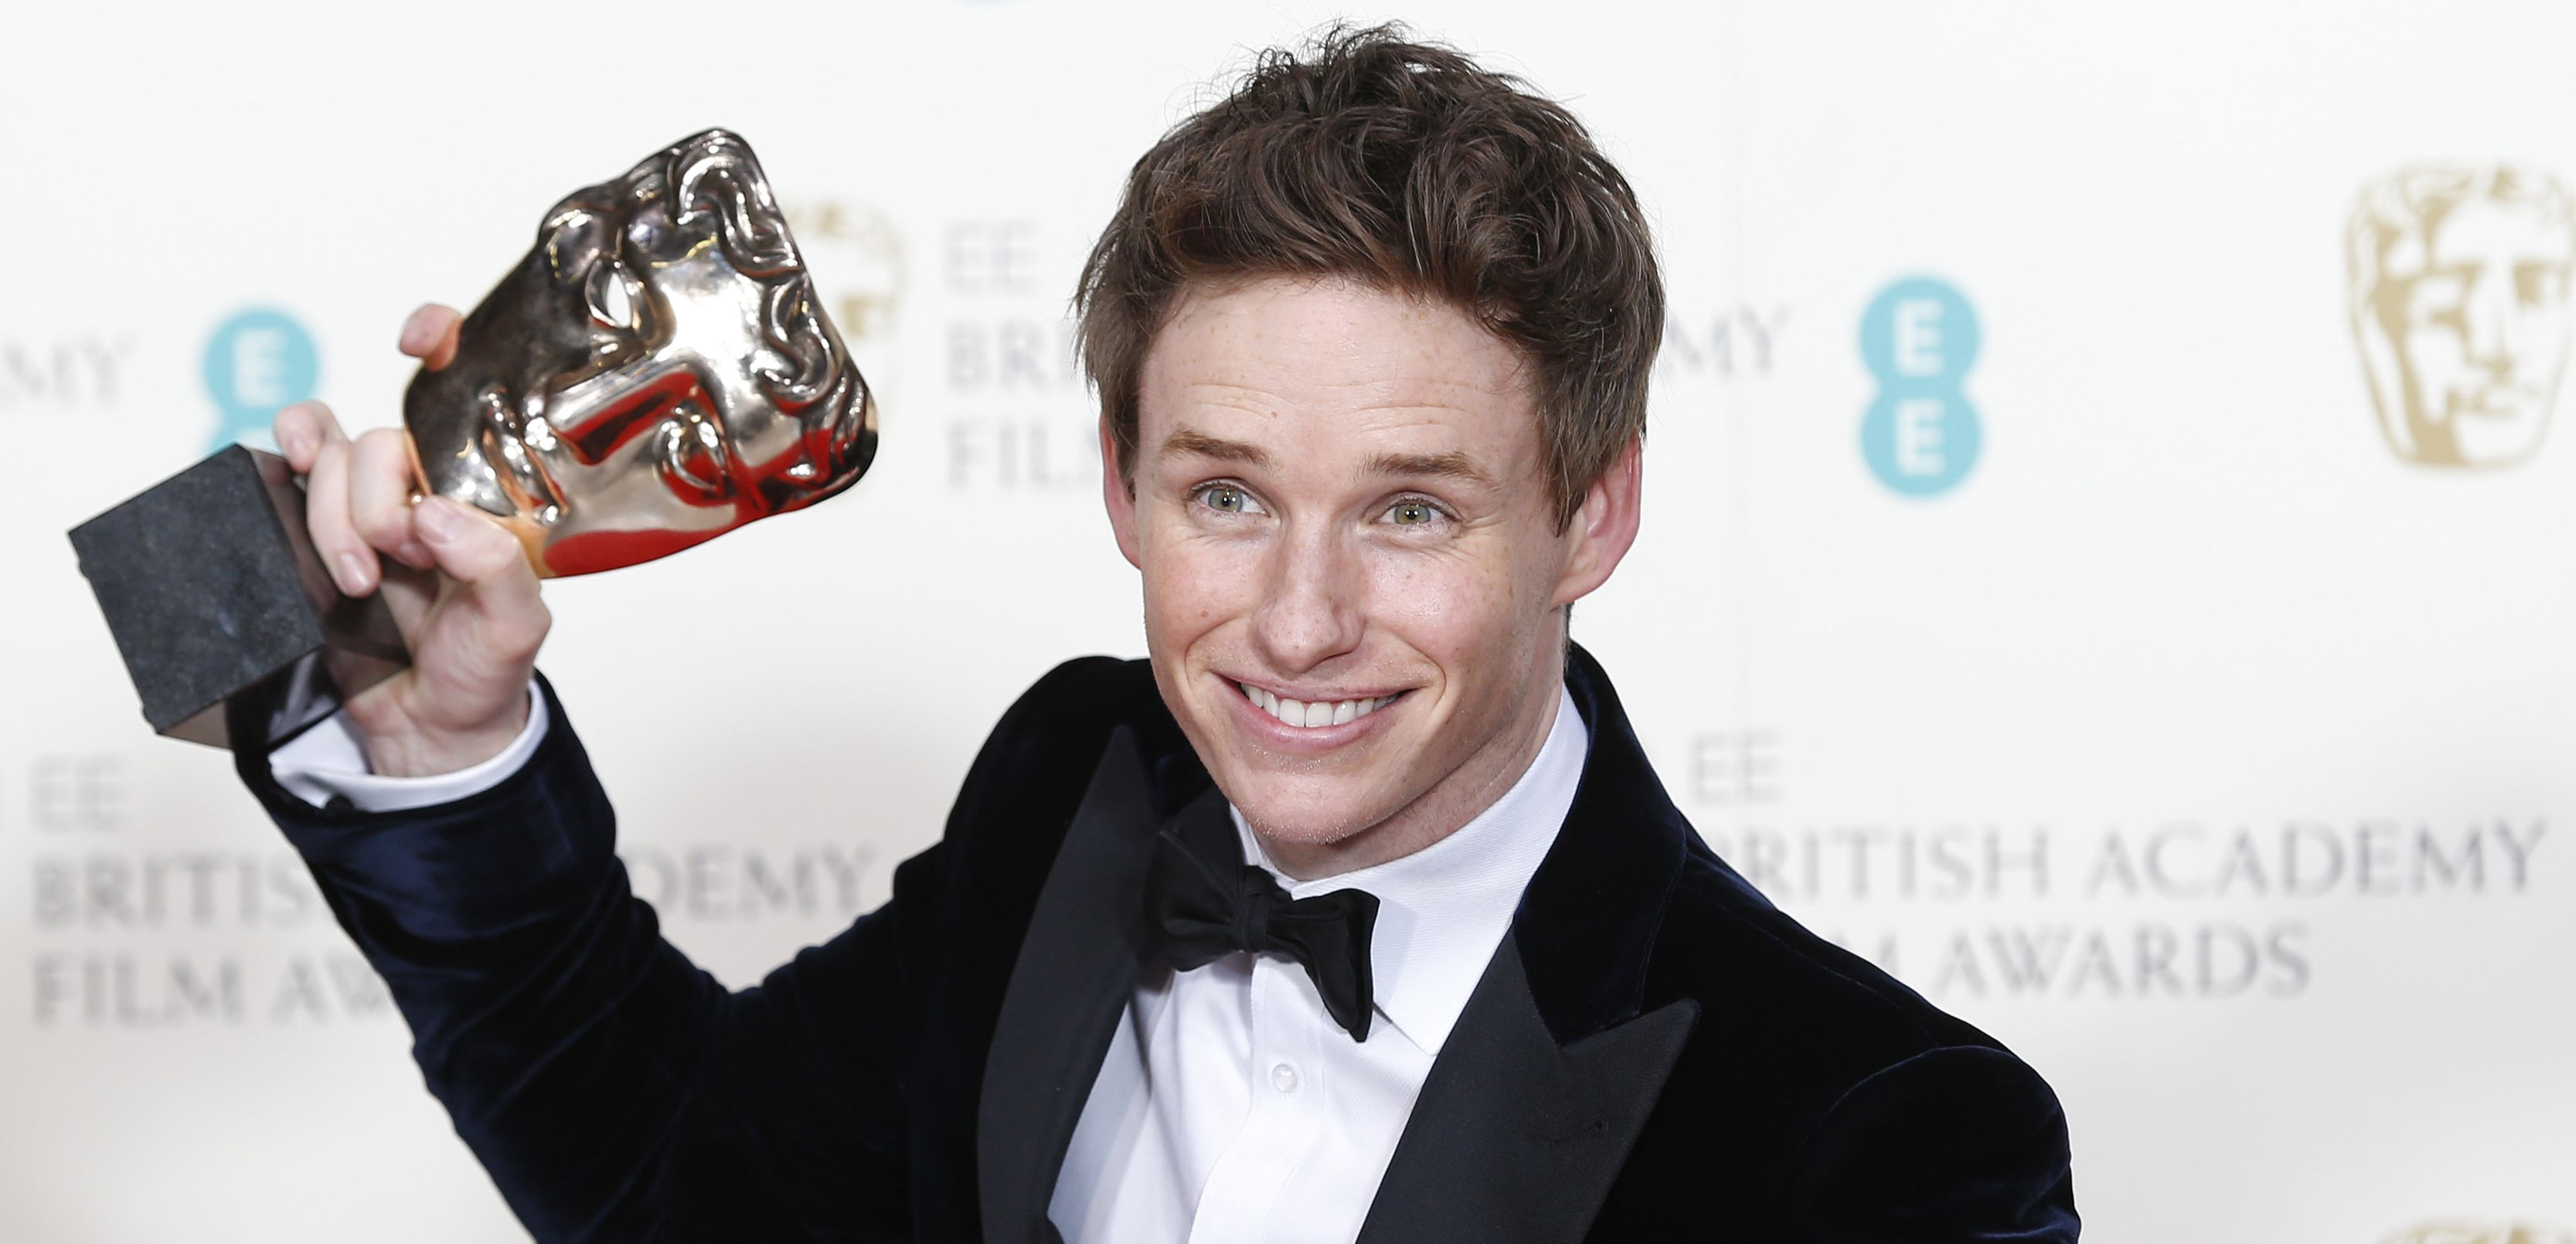 """Eddie Redmayne poses after receiving the award for best leading actor for """"The Theory of Everything"""" at the British Academy of Film and Arts (BAFTA) awards ceremony at the Royal Opera House in London February 8, 2015. REUTERS/Suzanne Plunkett (BRITAIN - Tags: ENTERTAINMENT) - RTR4OQ28"""